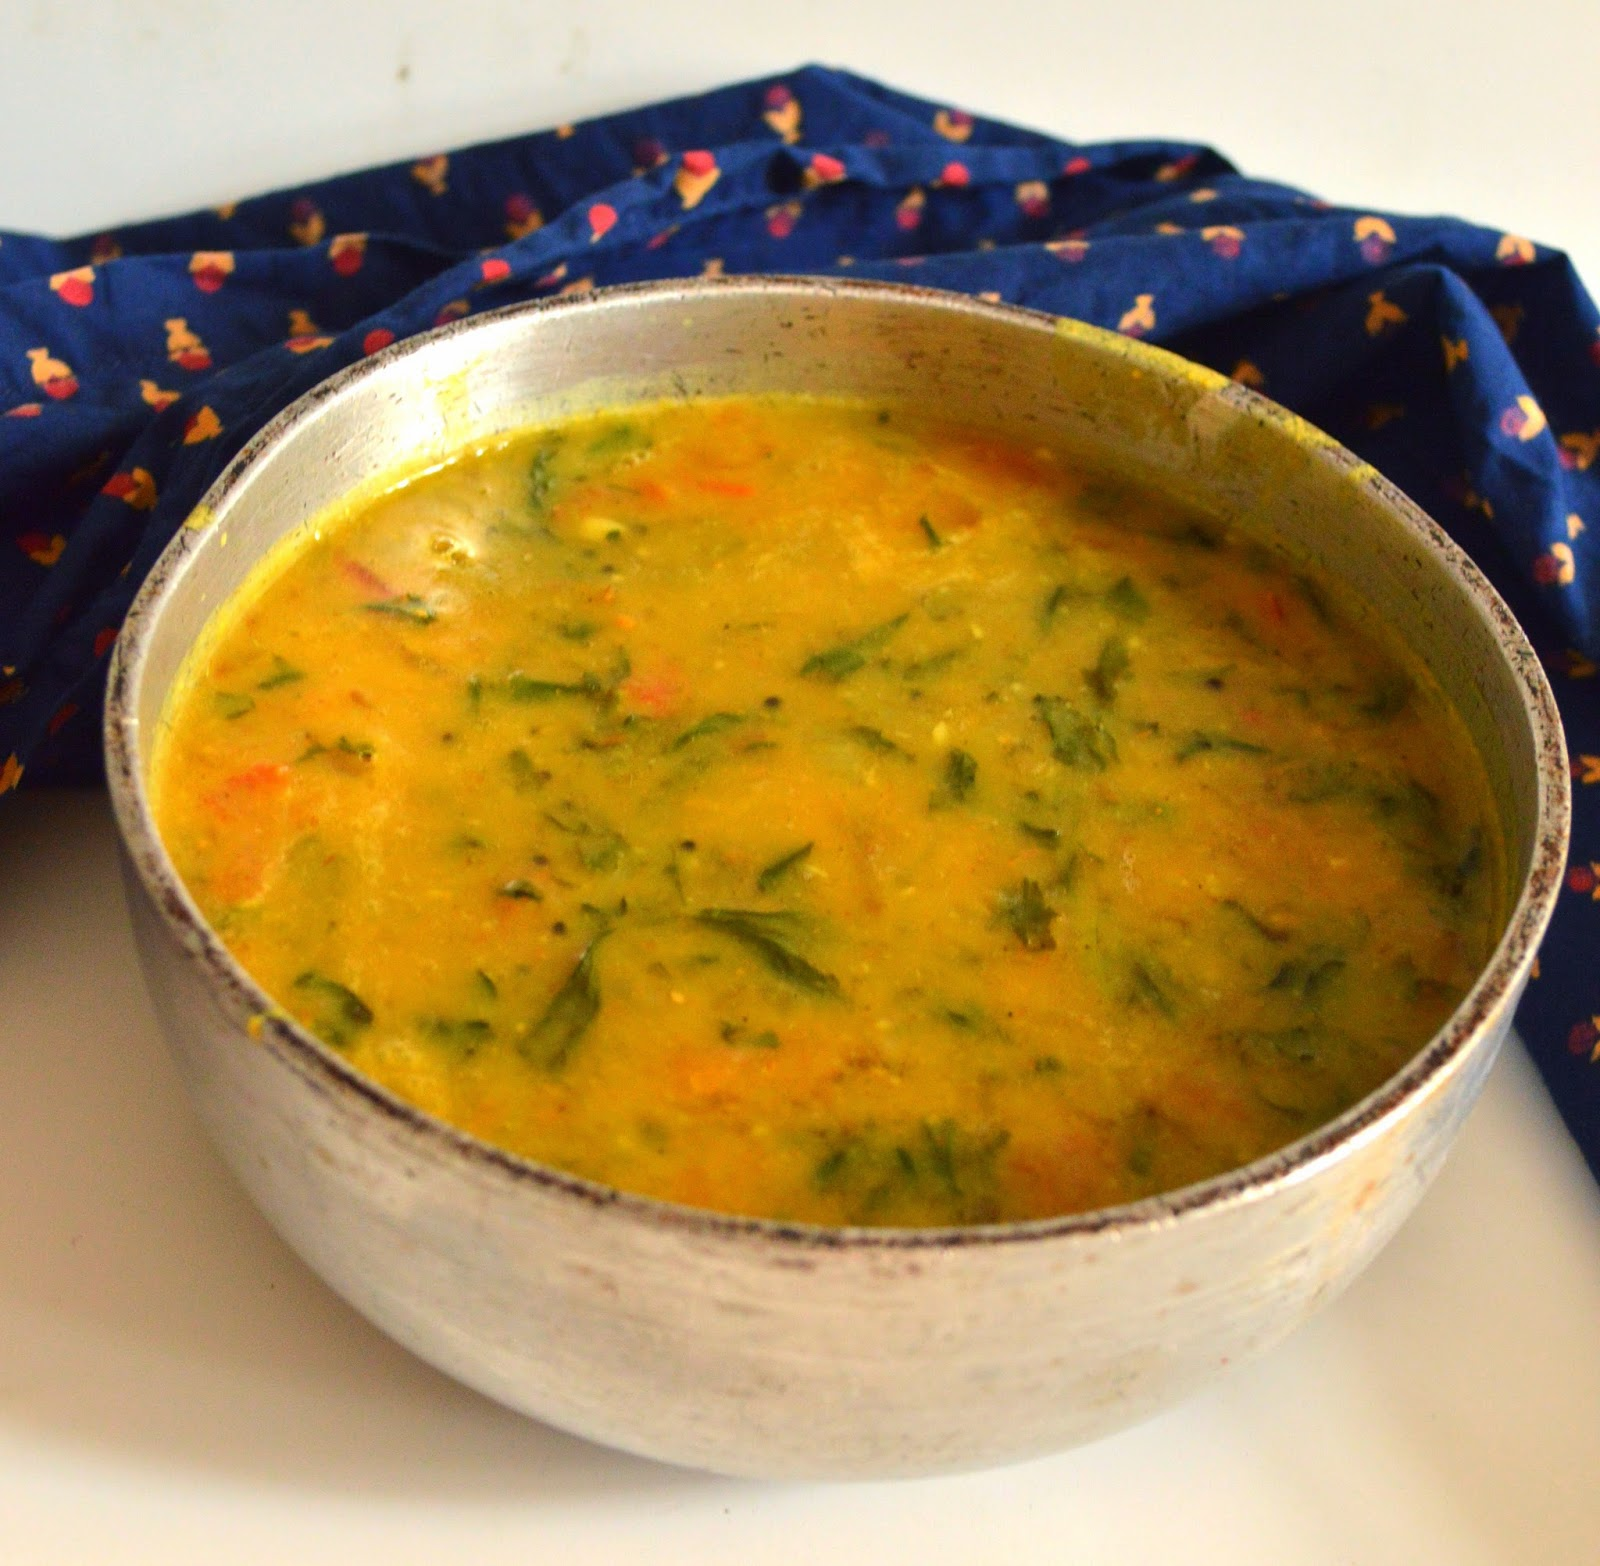 My Cooking Adventures: Methi Dal | Lentil soup with ...